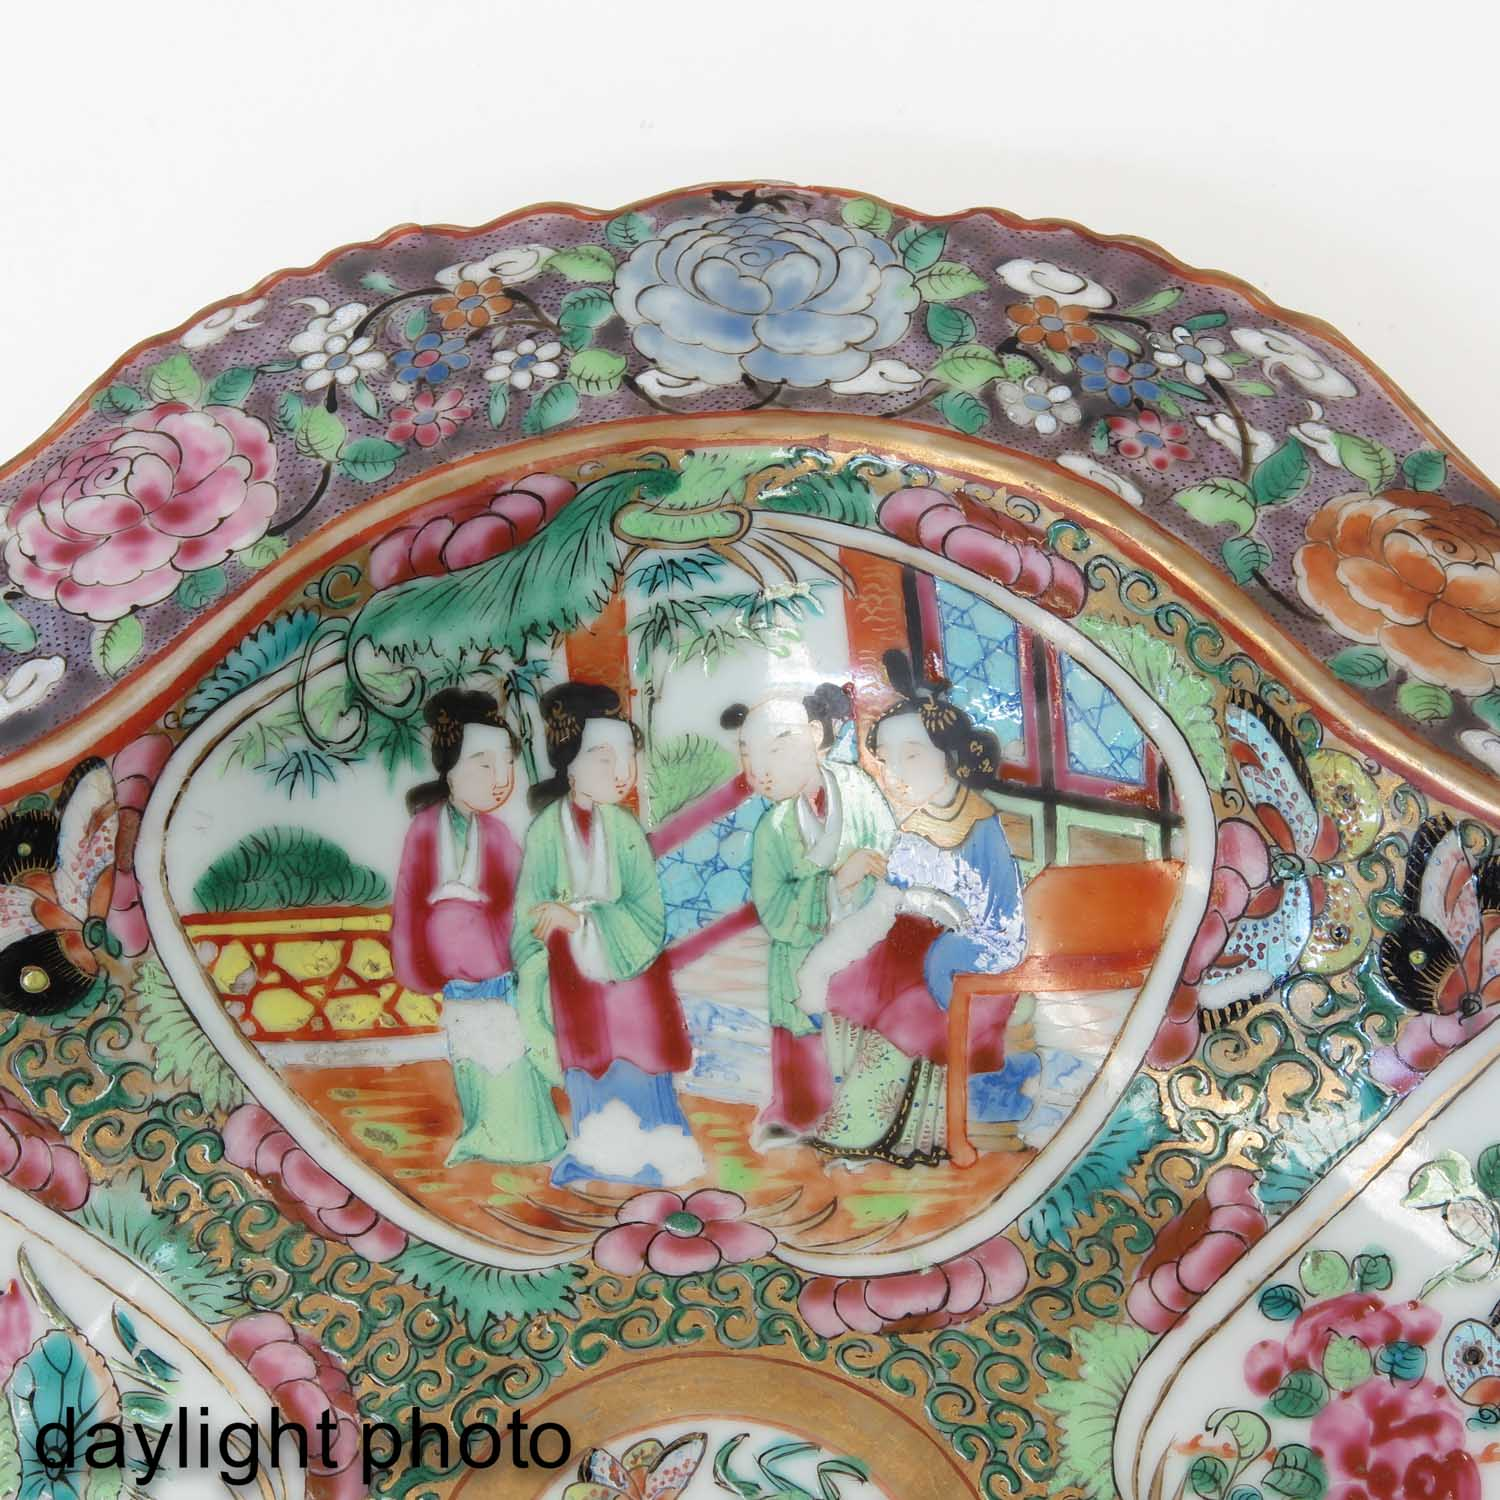 A Cantonese Dish - Image 7 of 7